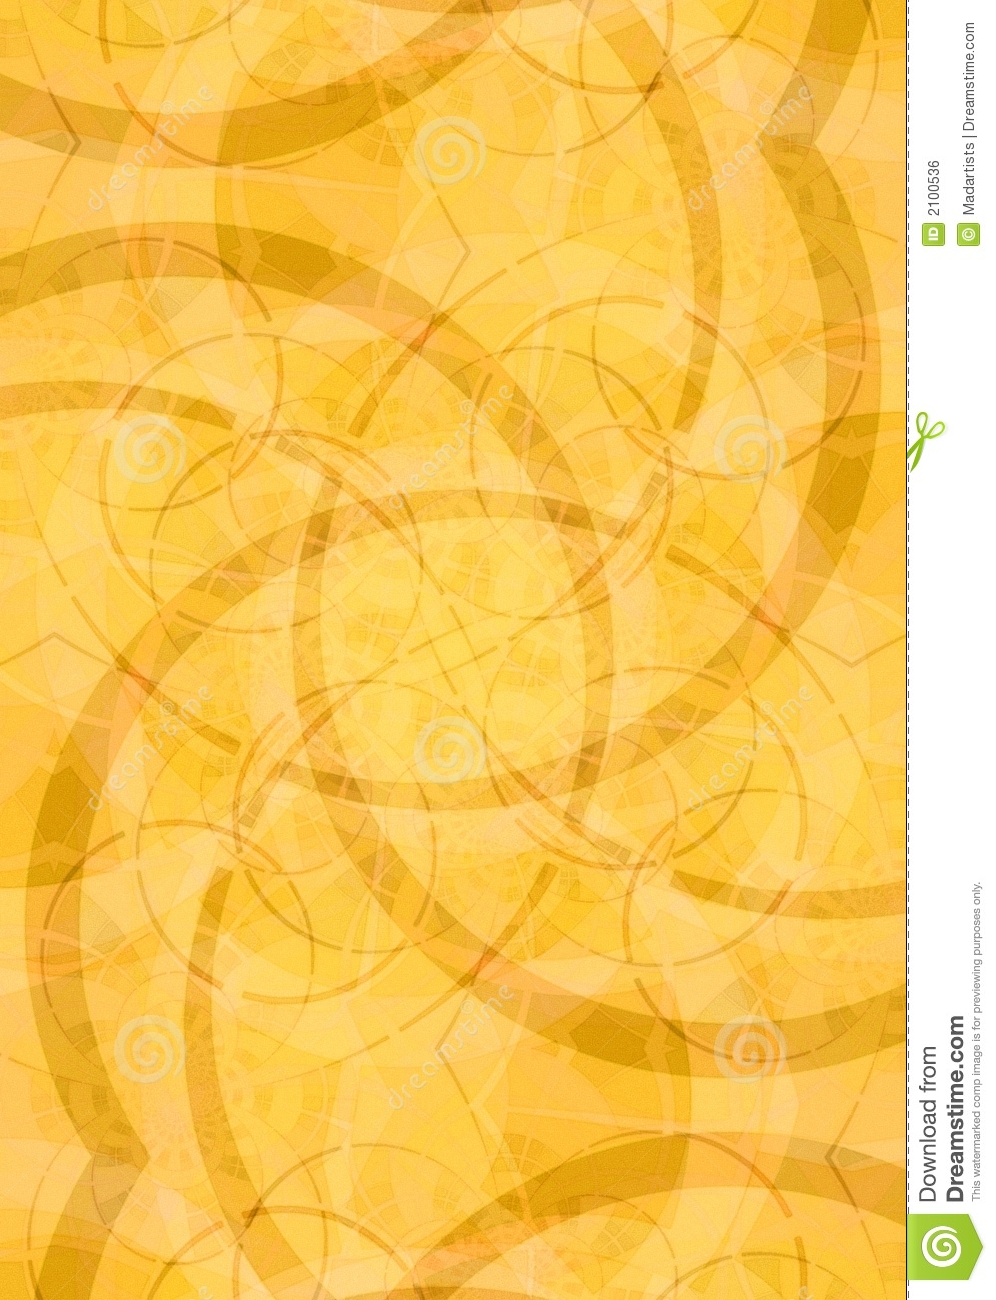 gold abstract wallpaper wch7i - photo #28